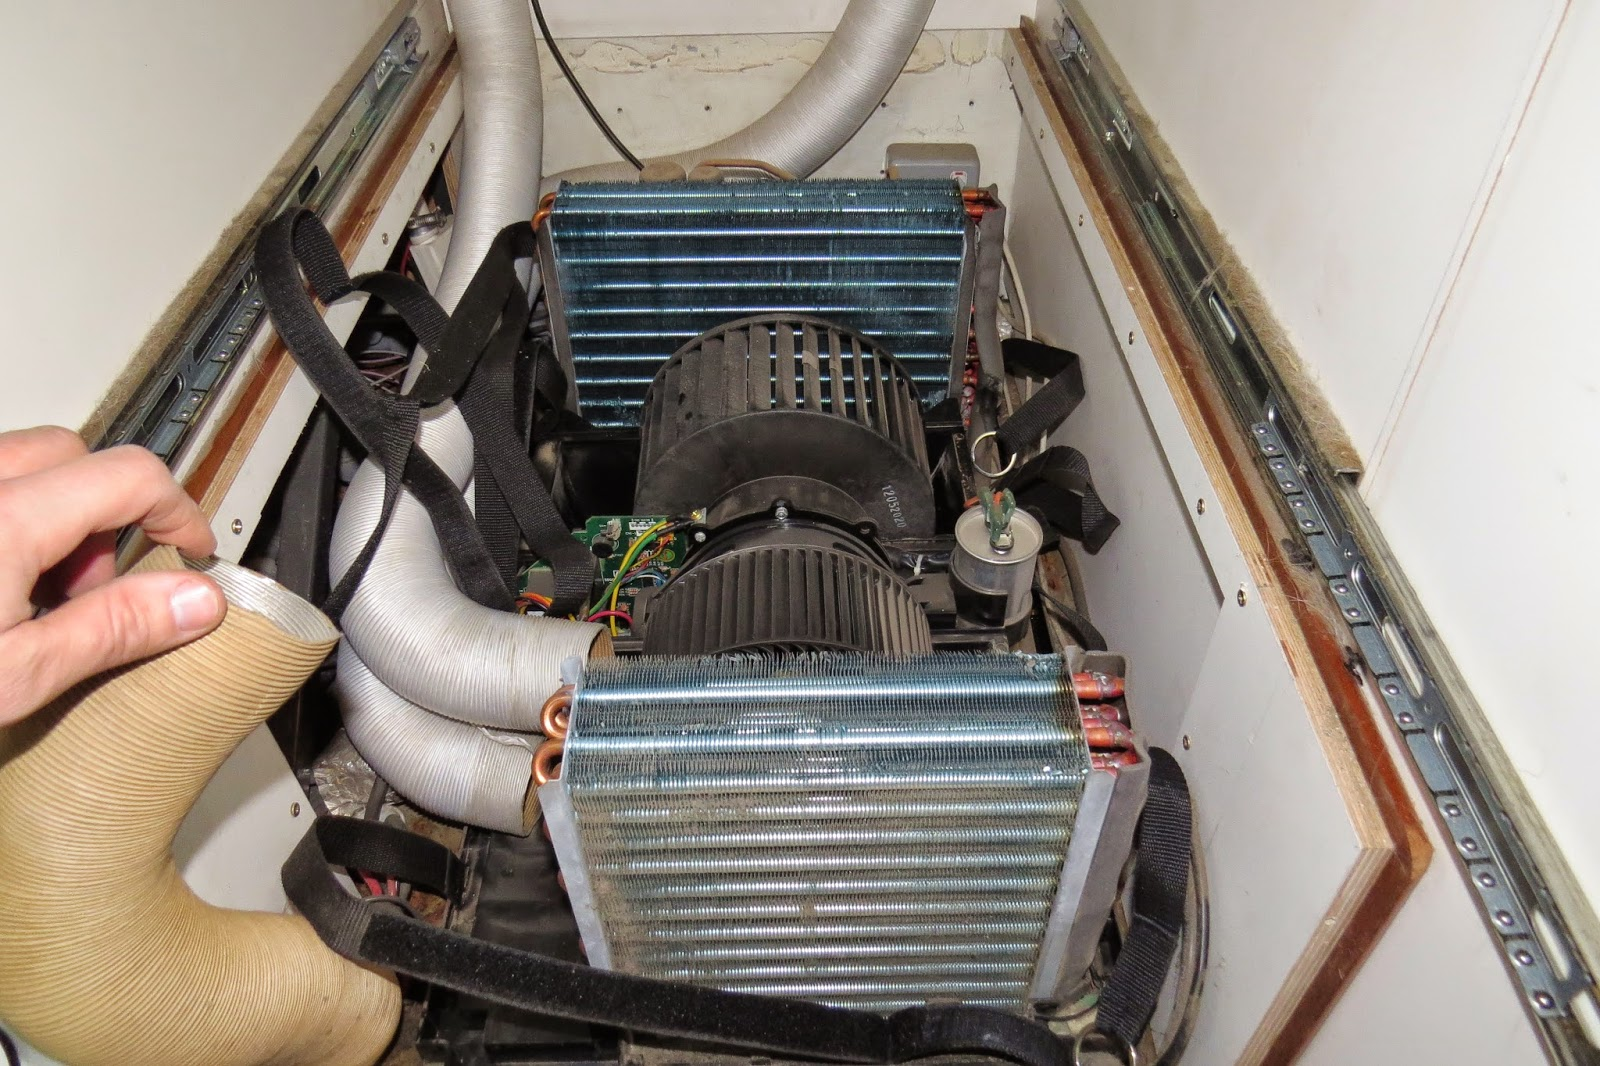 The insides of a Dometic HB2500 air conditioner